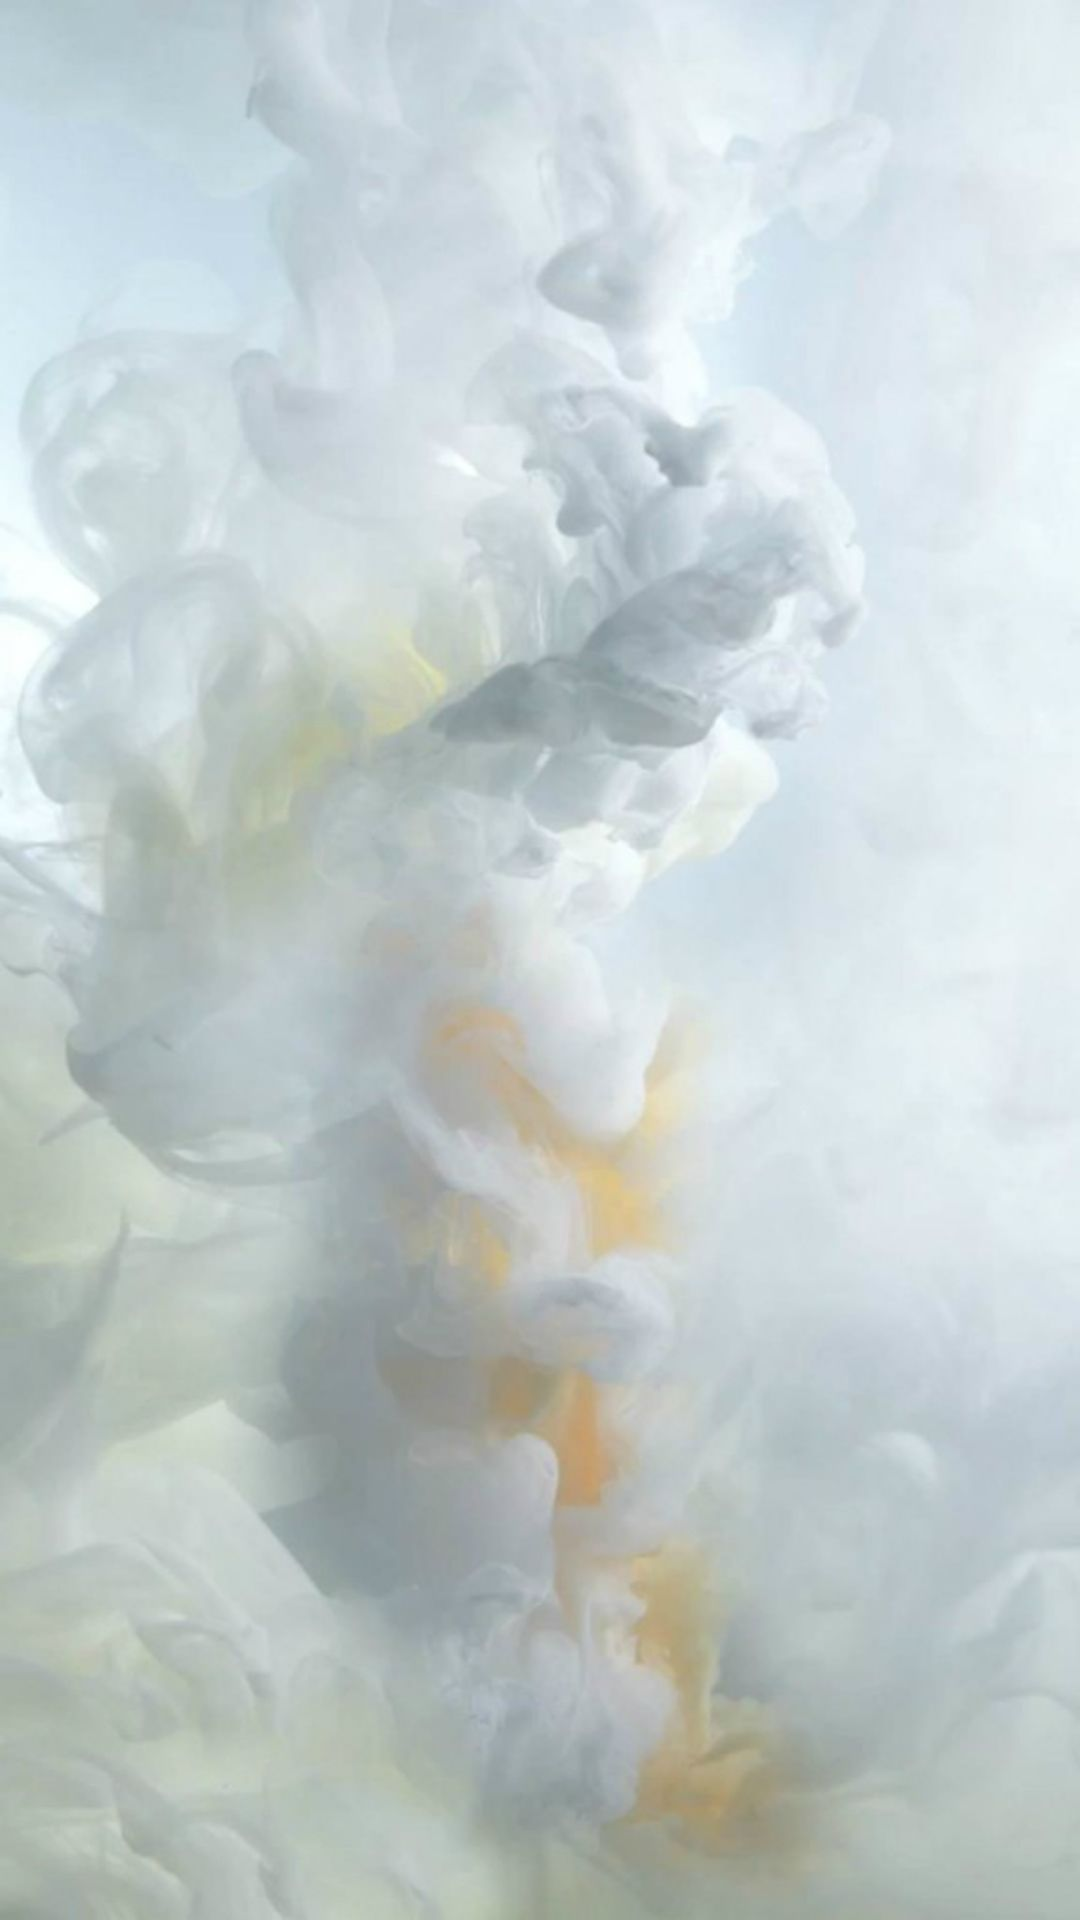 White Ink Smoke IOS9 Wallpaper Art IPhone 6